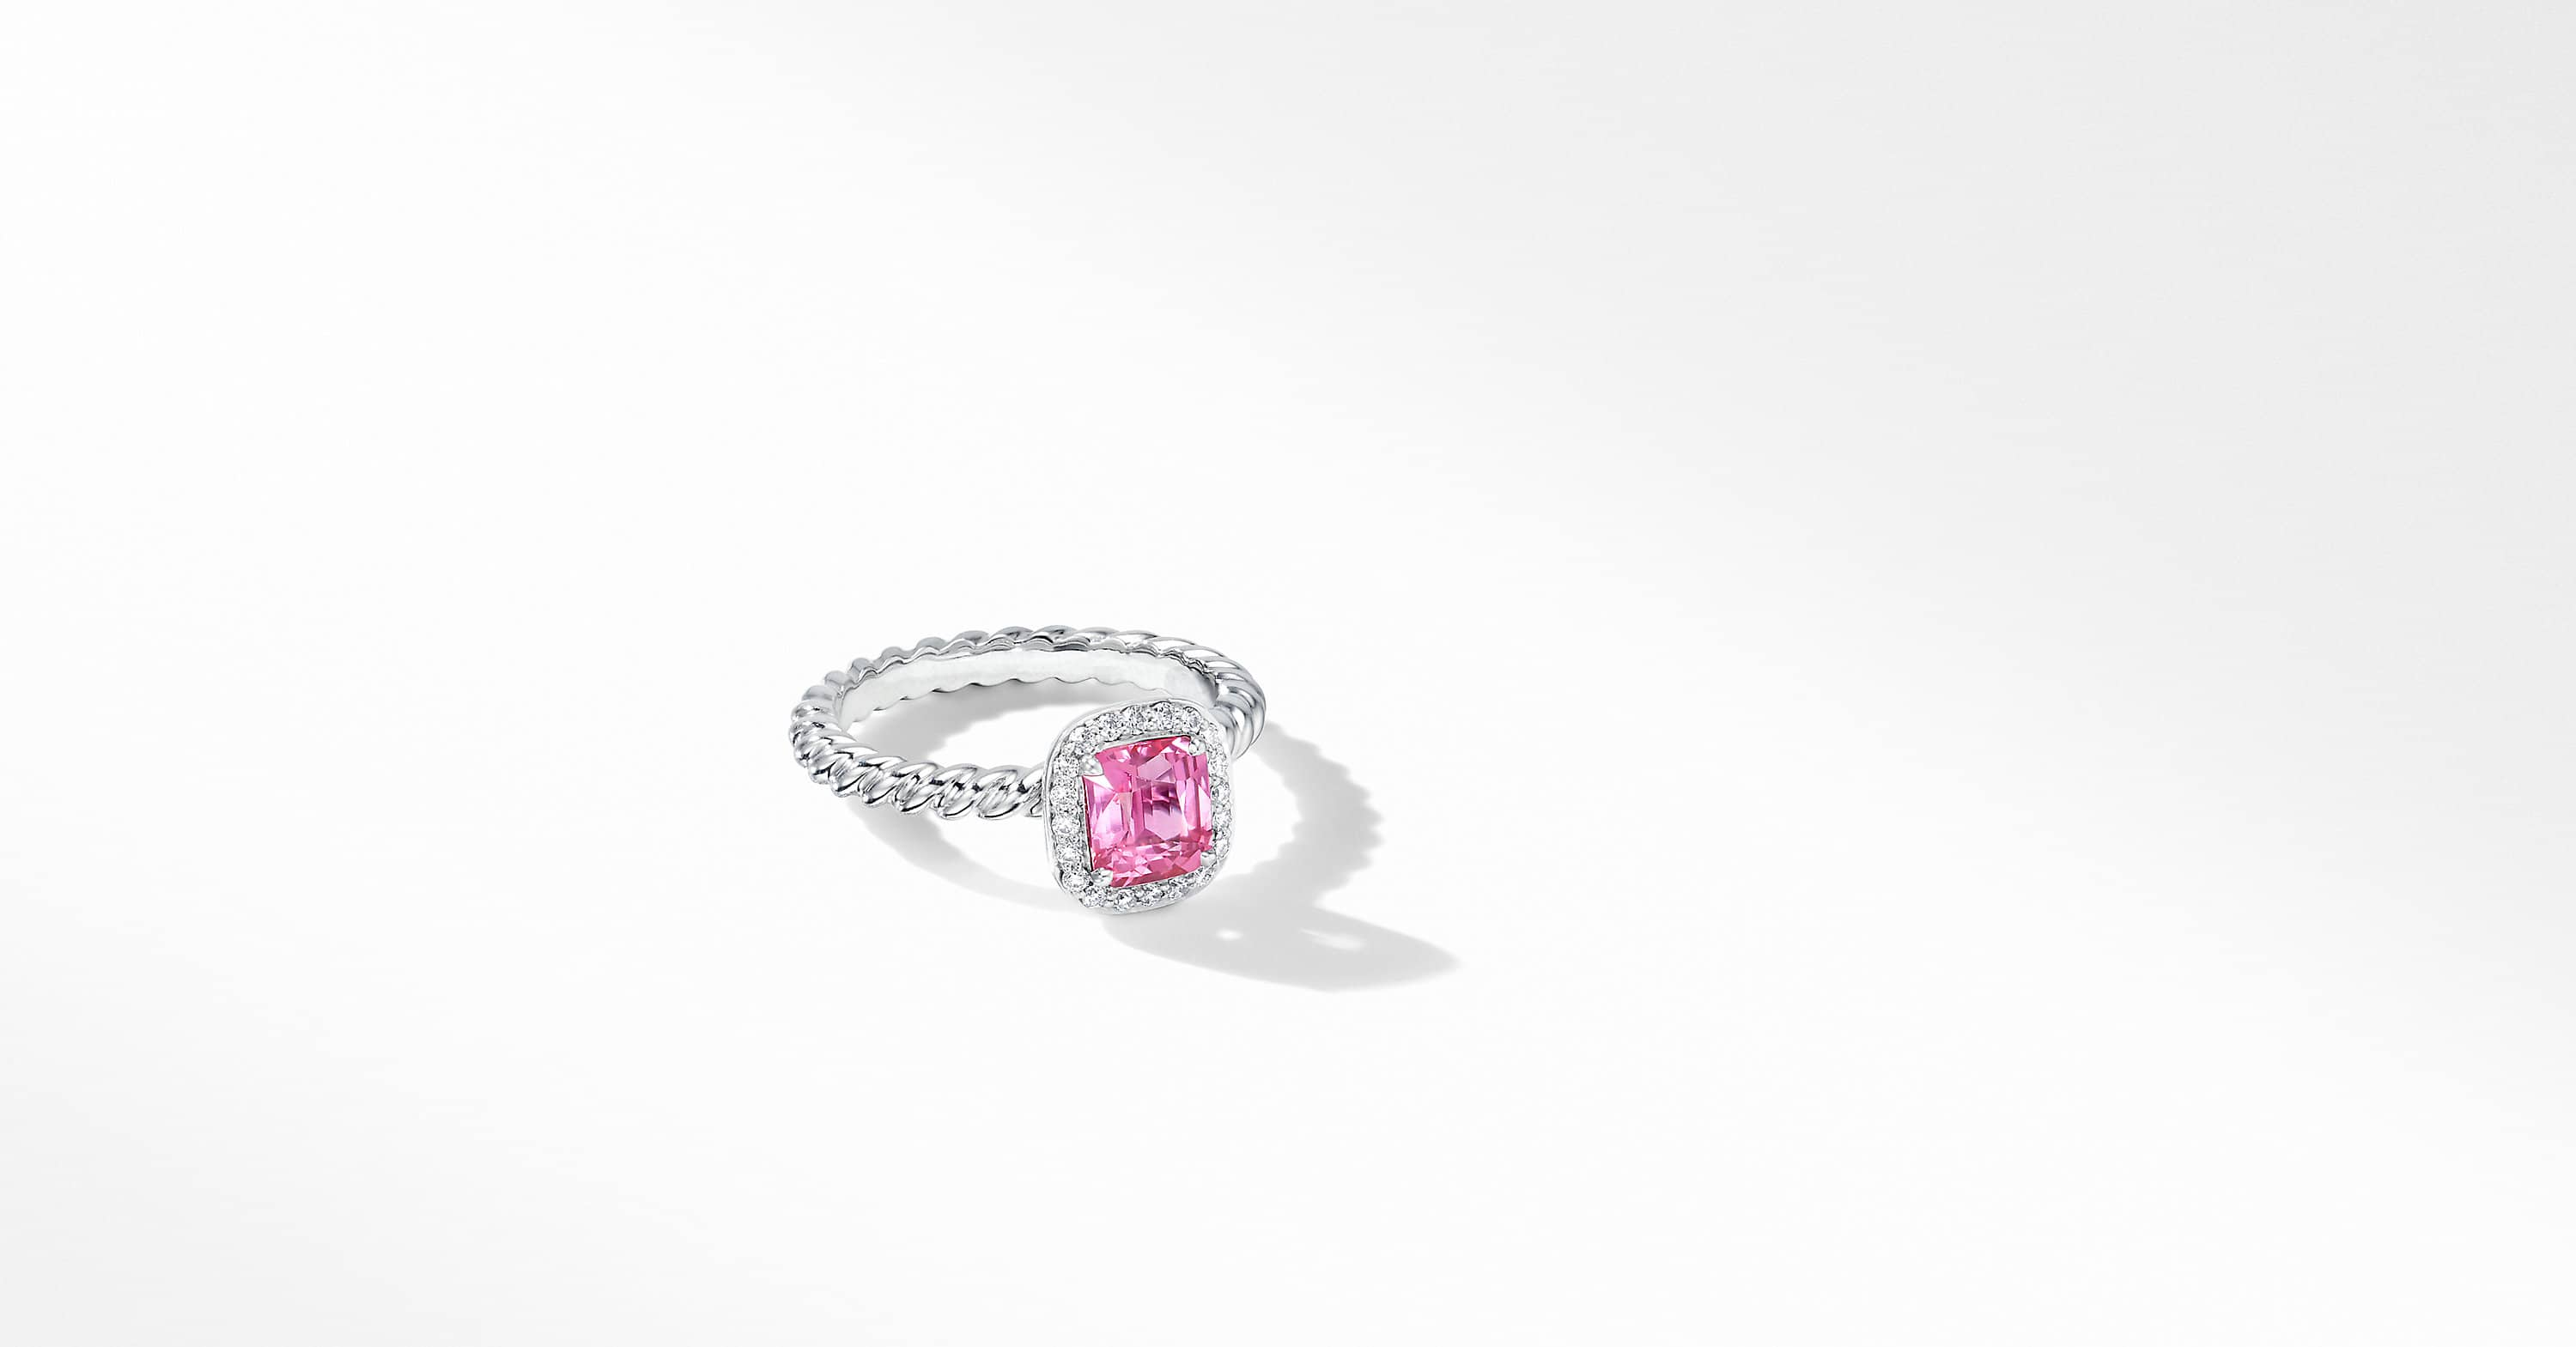 DY Capri Engagement Ring in Platinum with Pink Sapphire, Cushion